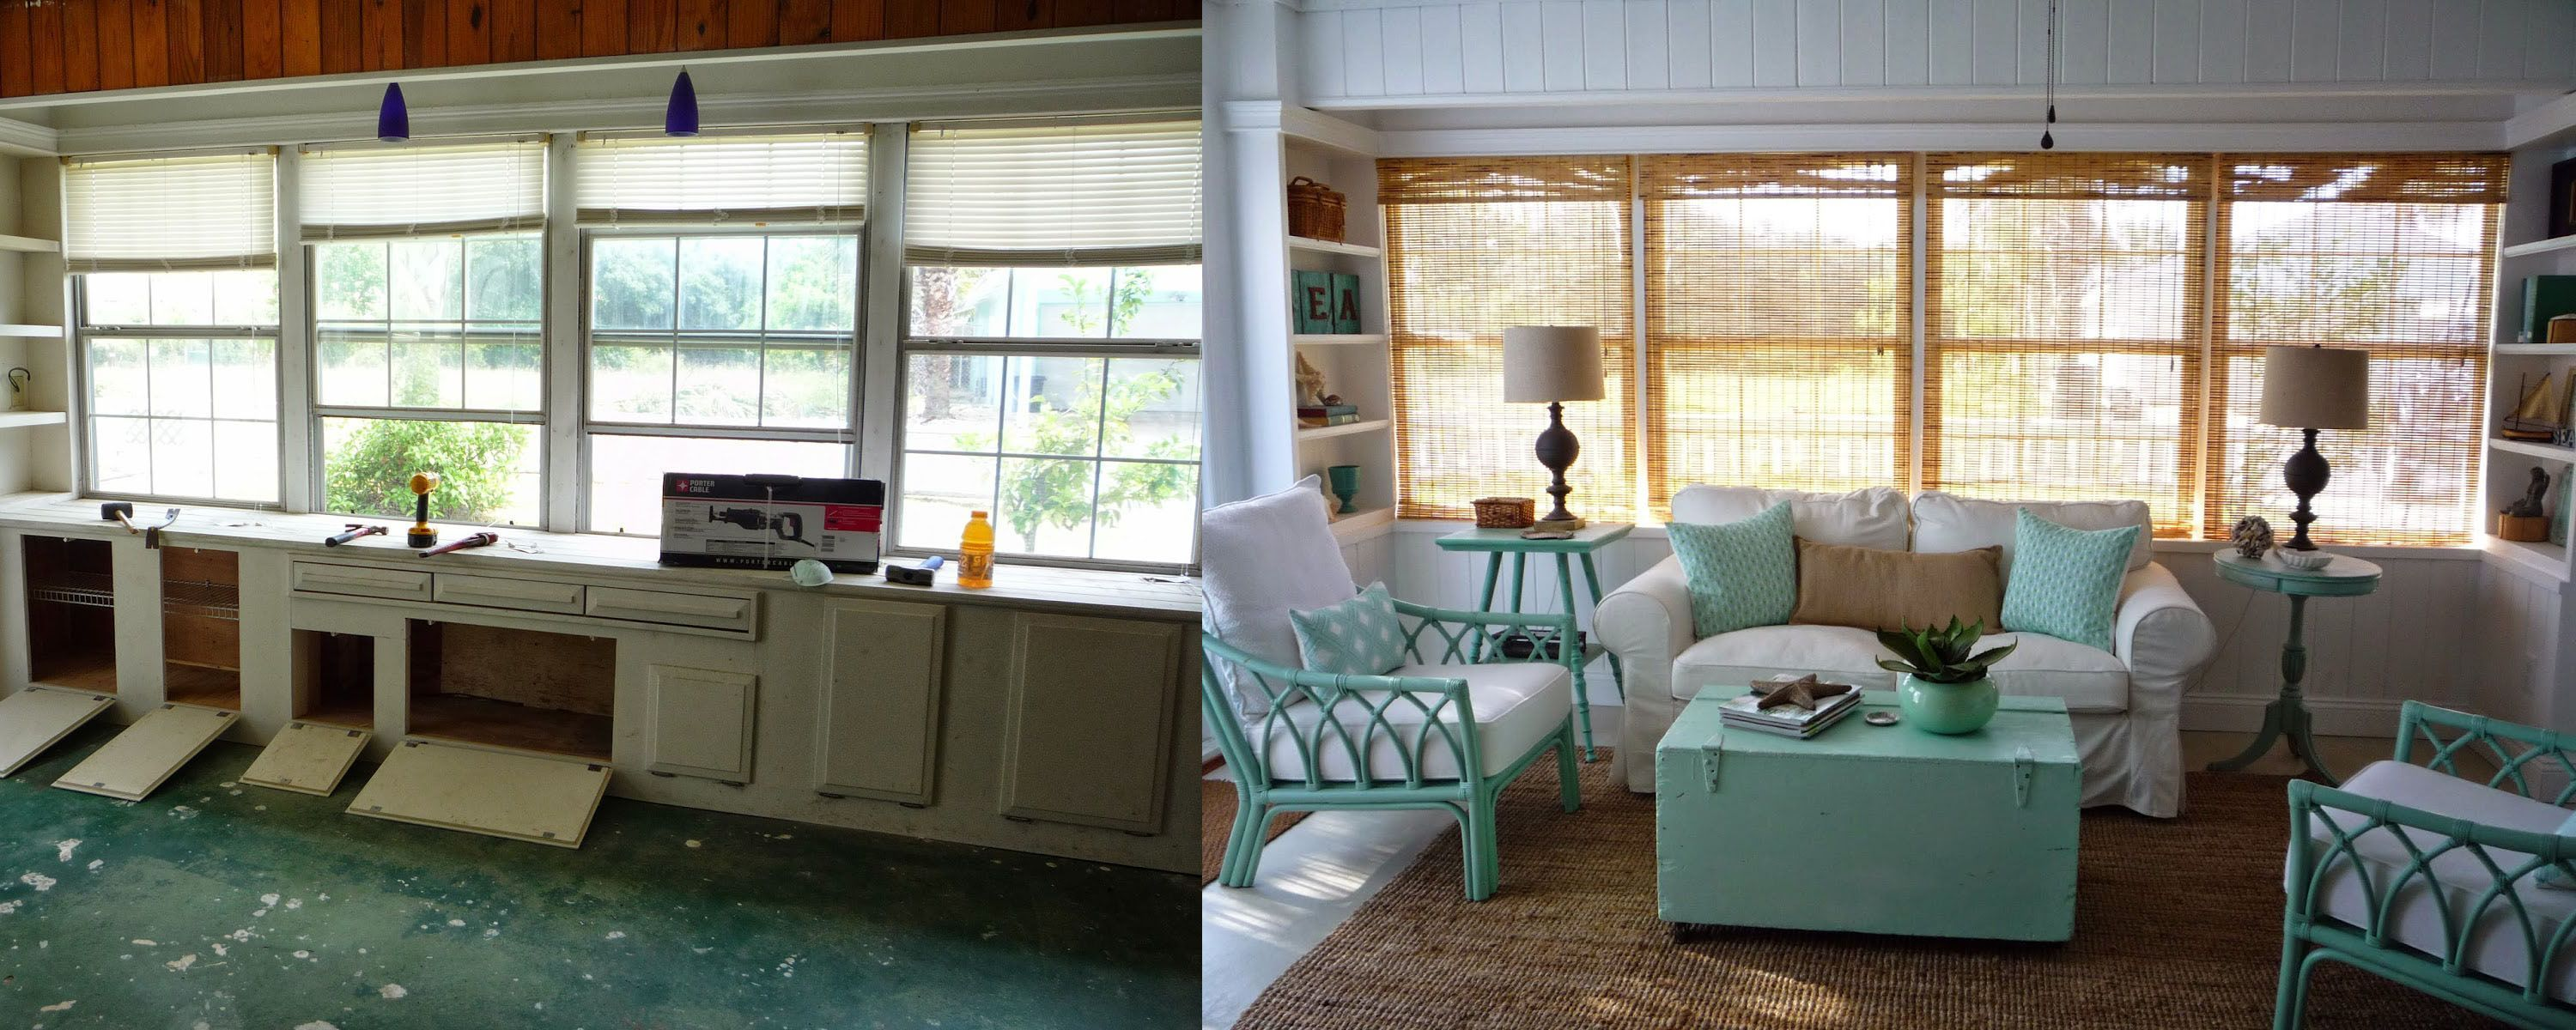 Before and after of a coastal style living room remodel   Living ...